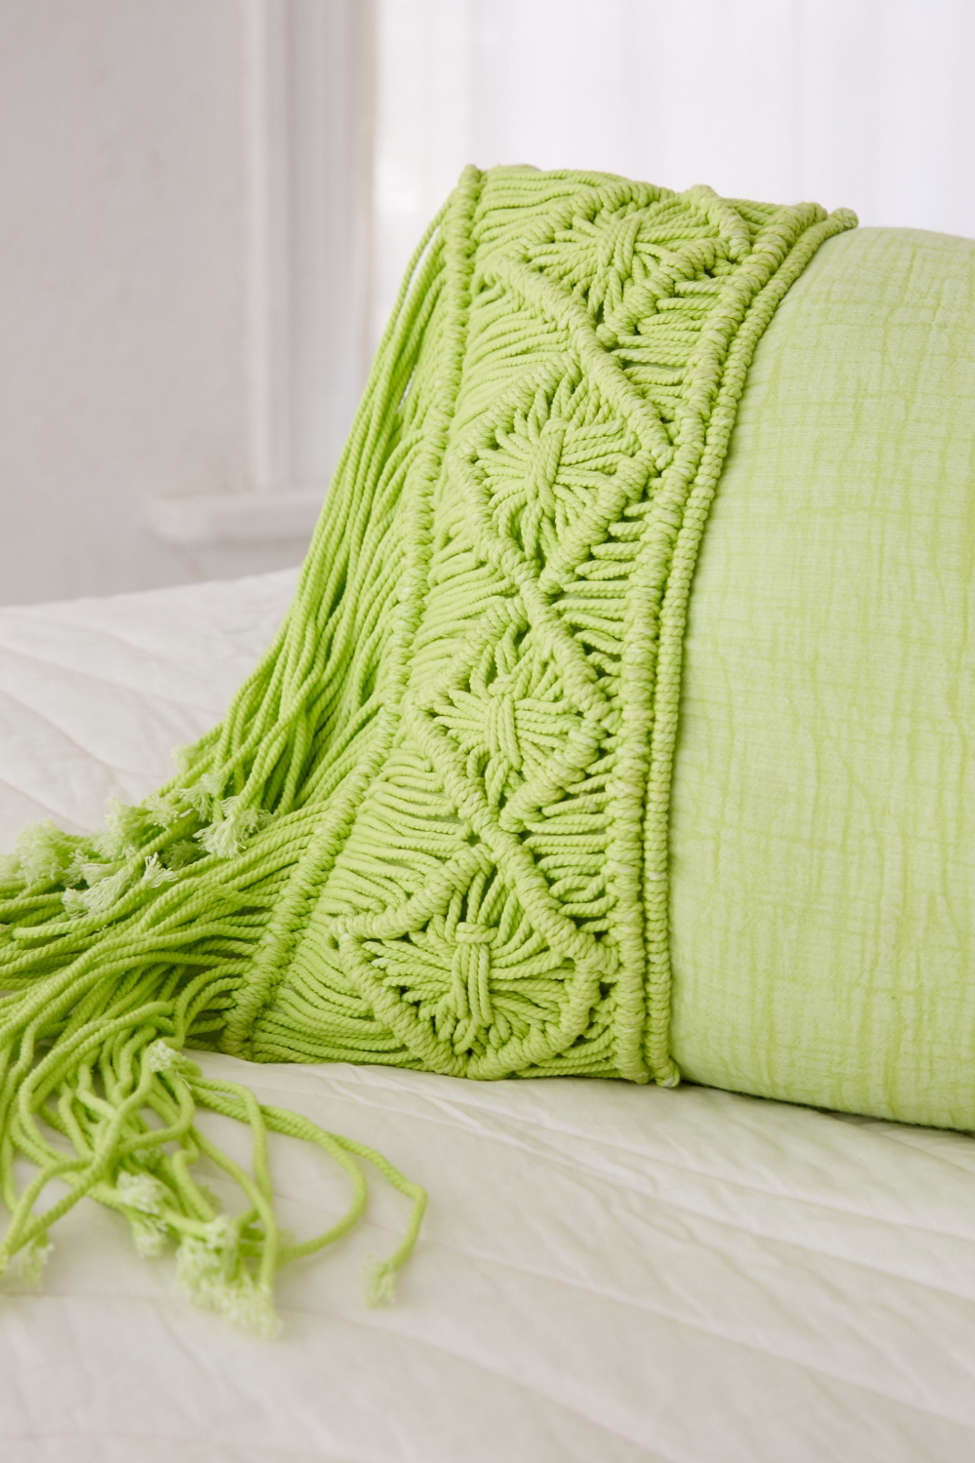 Slide View: 2: Aiko Crochet Fringe Bolster Pillow